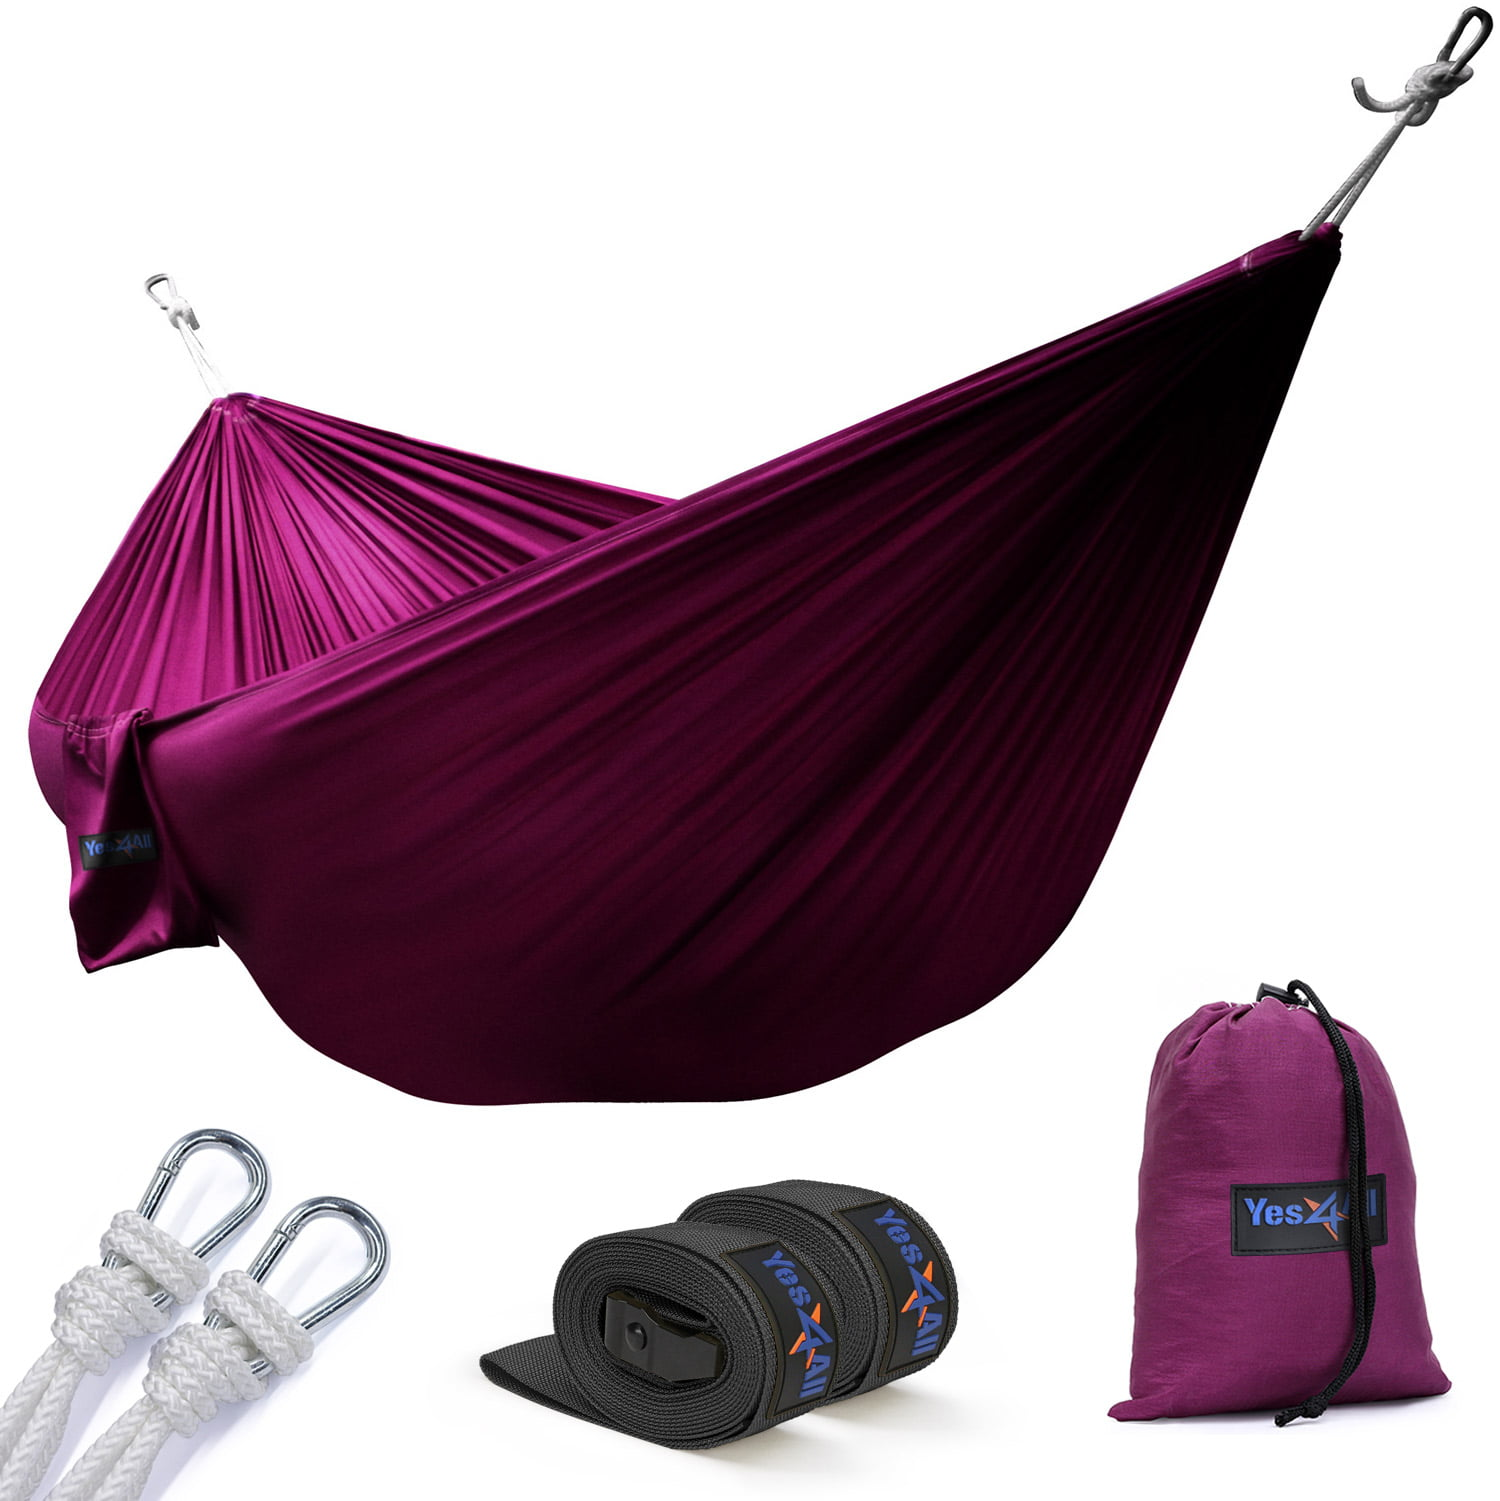 Yes4All Ultralight Portable Parachute Nylon Double Hammock With Tree Straps Carry Bag Included by Yes4All